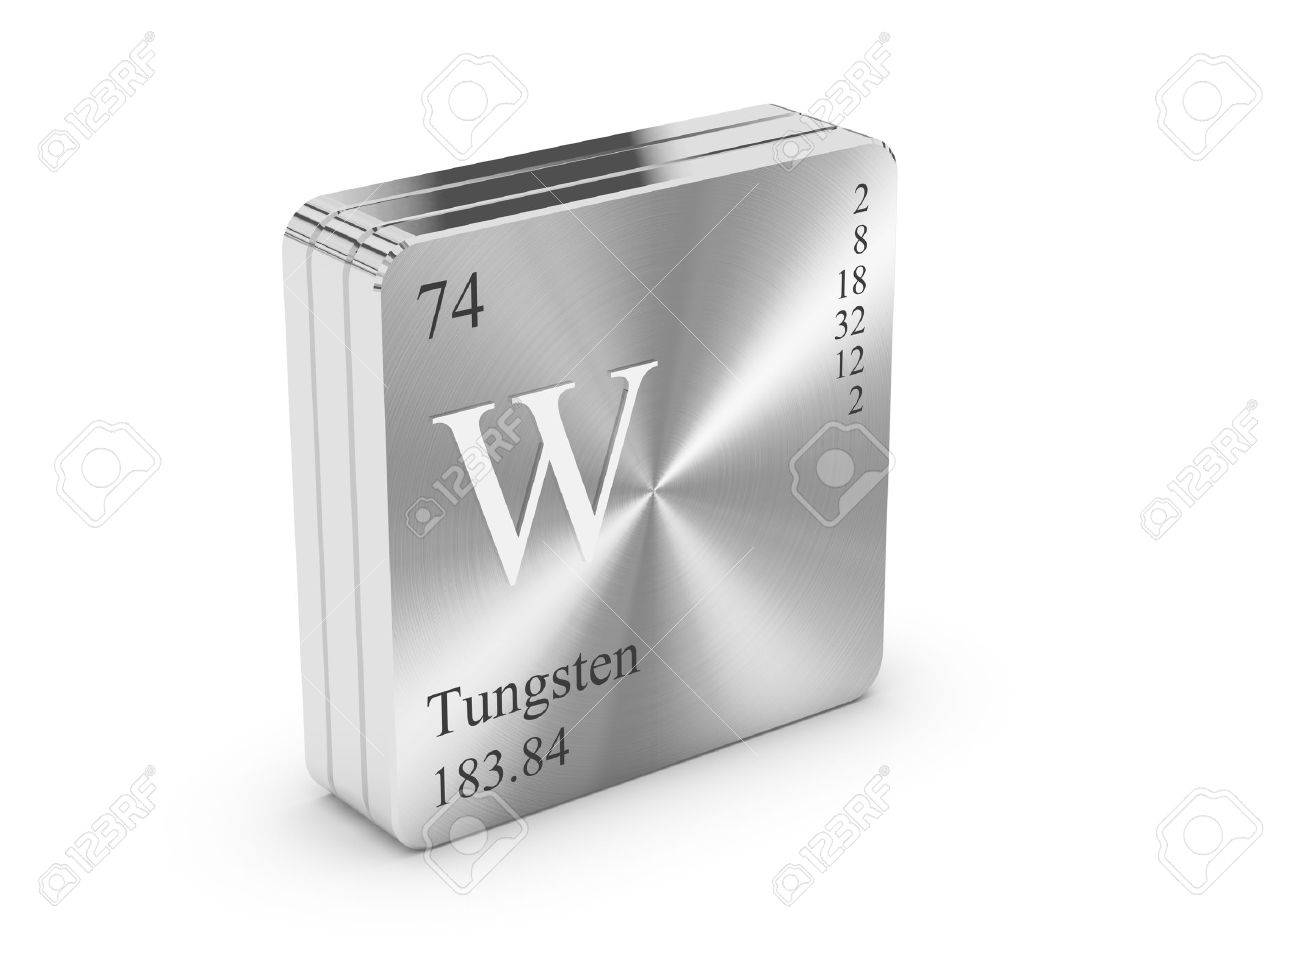 Tungsten Element Of The Periodic Table On Metal Steel Block Stock